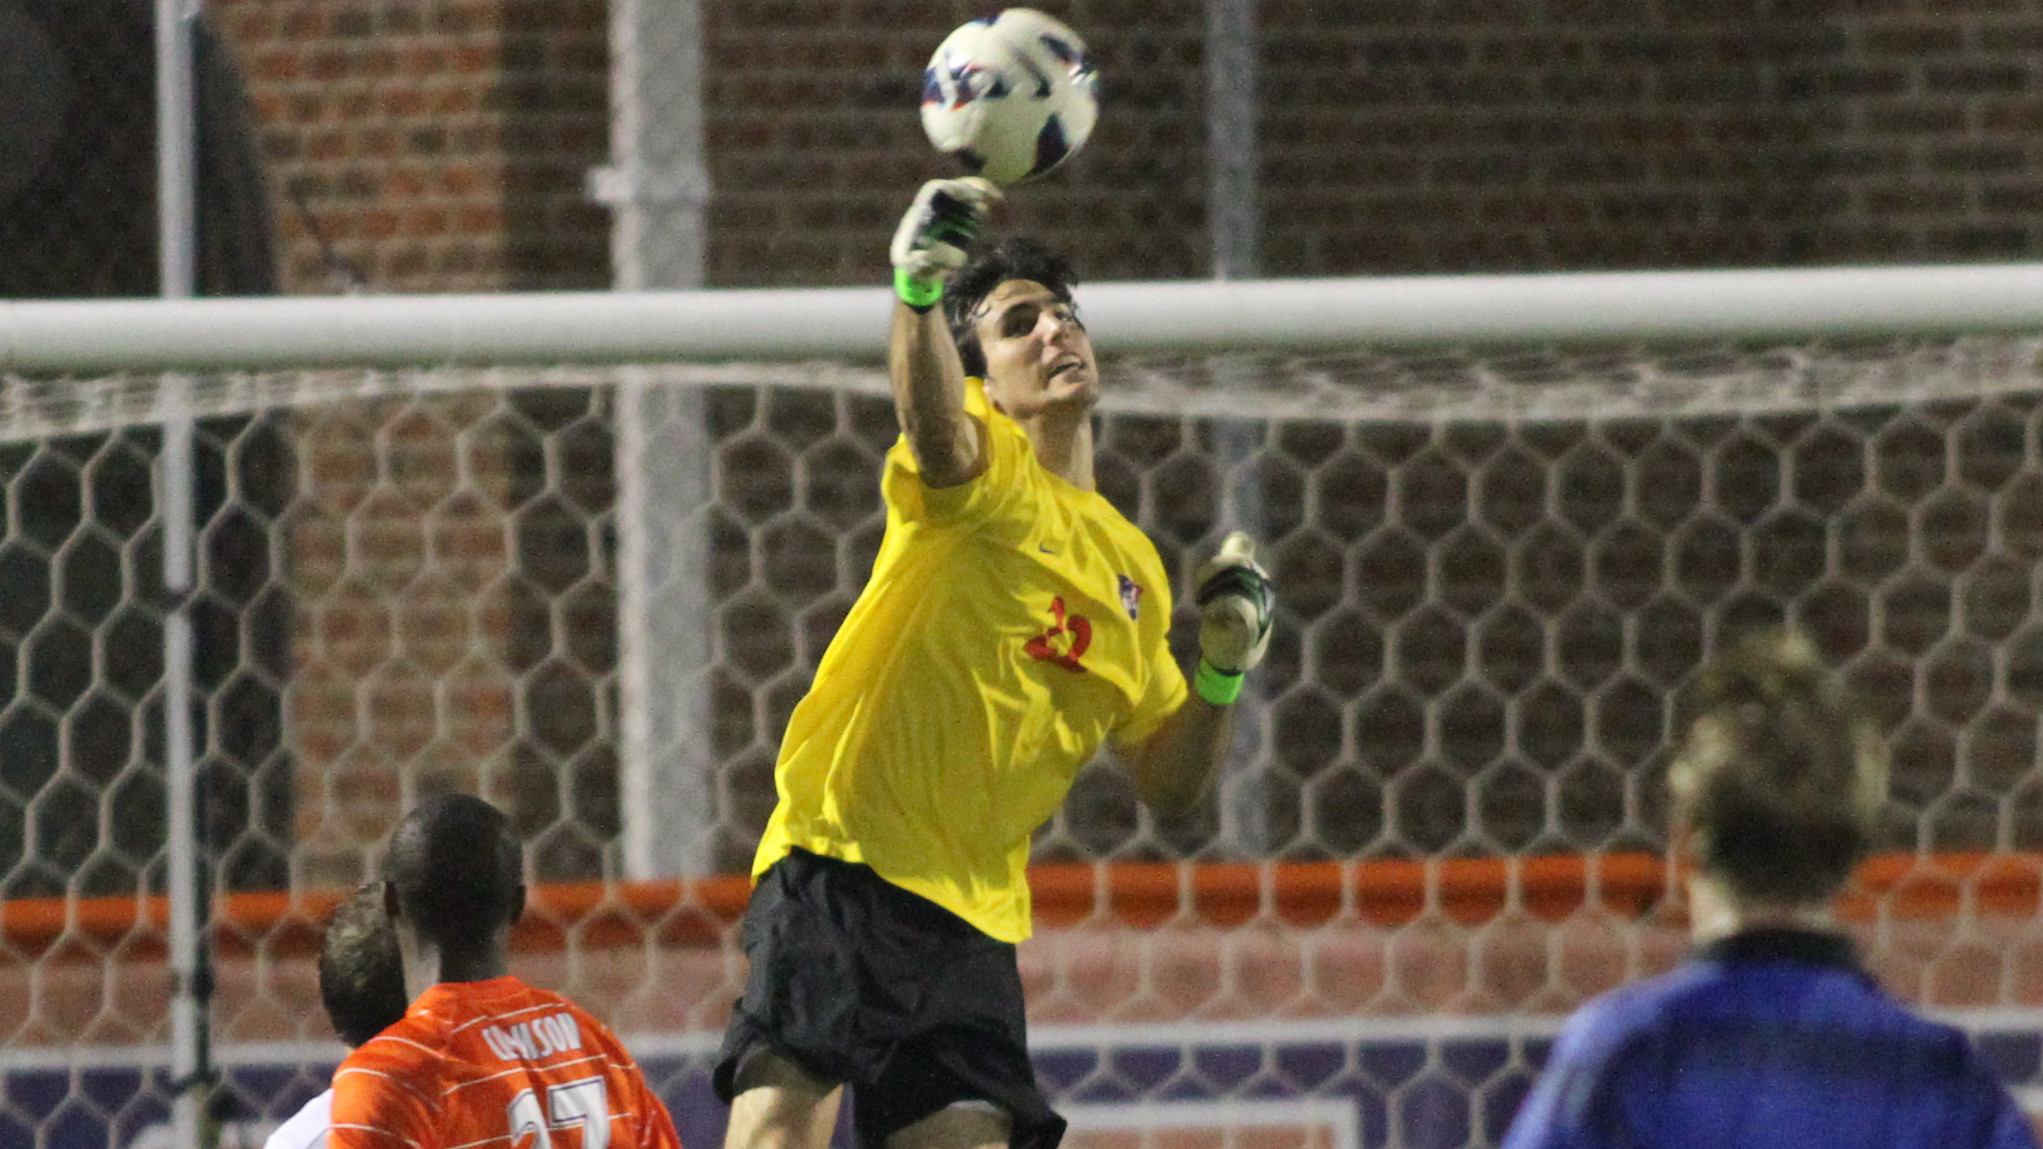 #17 Clemson and #10 Wake Forest Play to 1-1 Tie